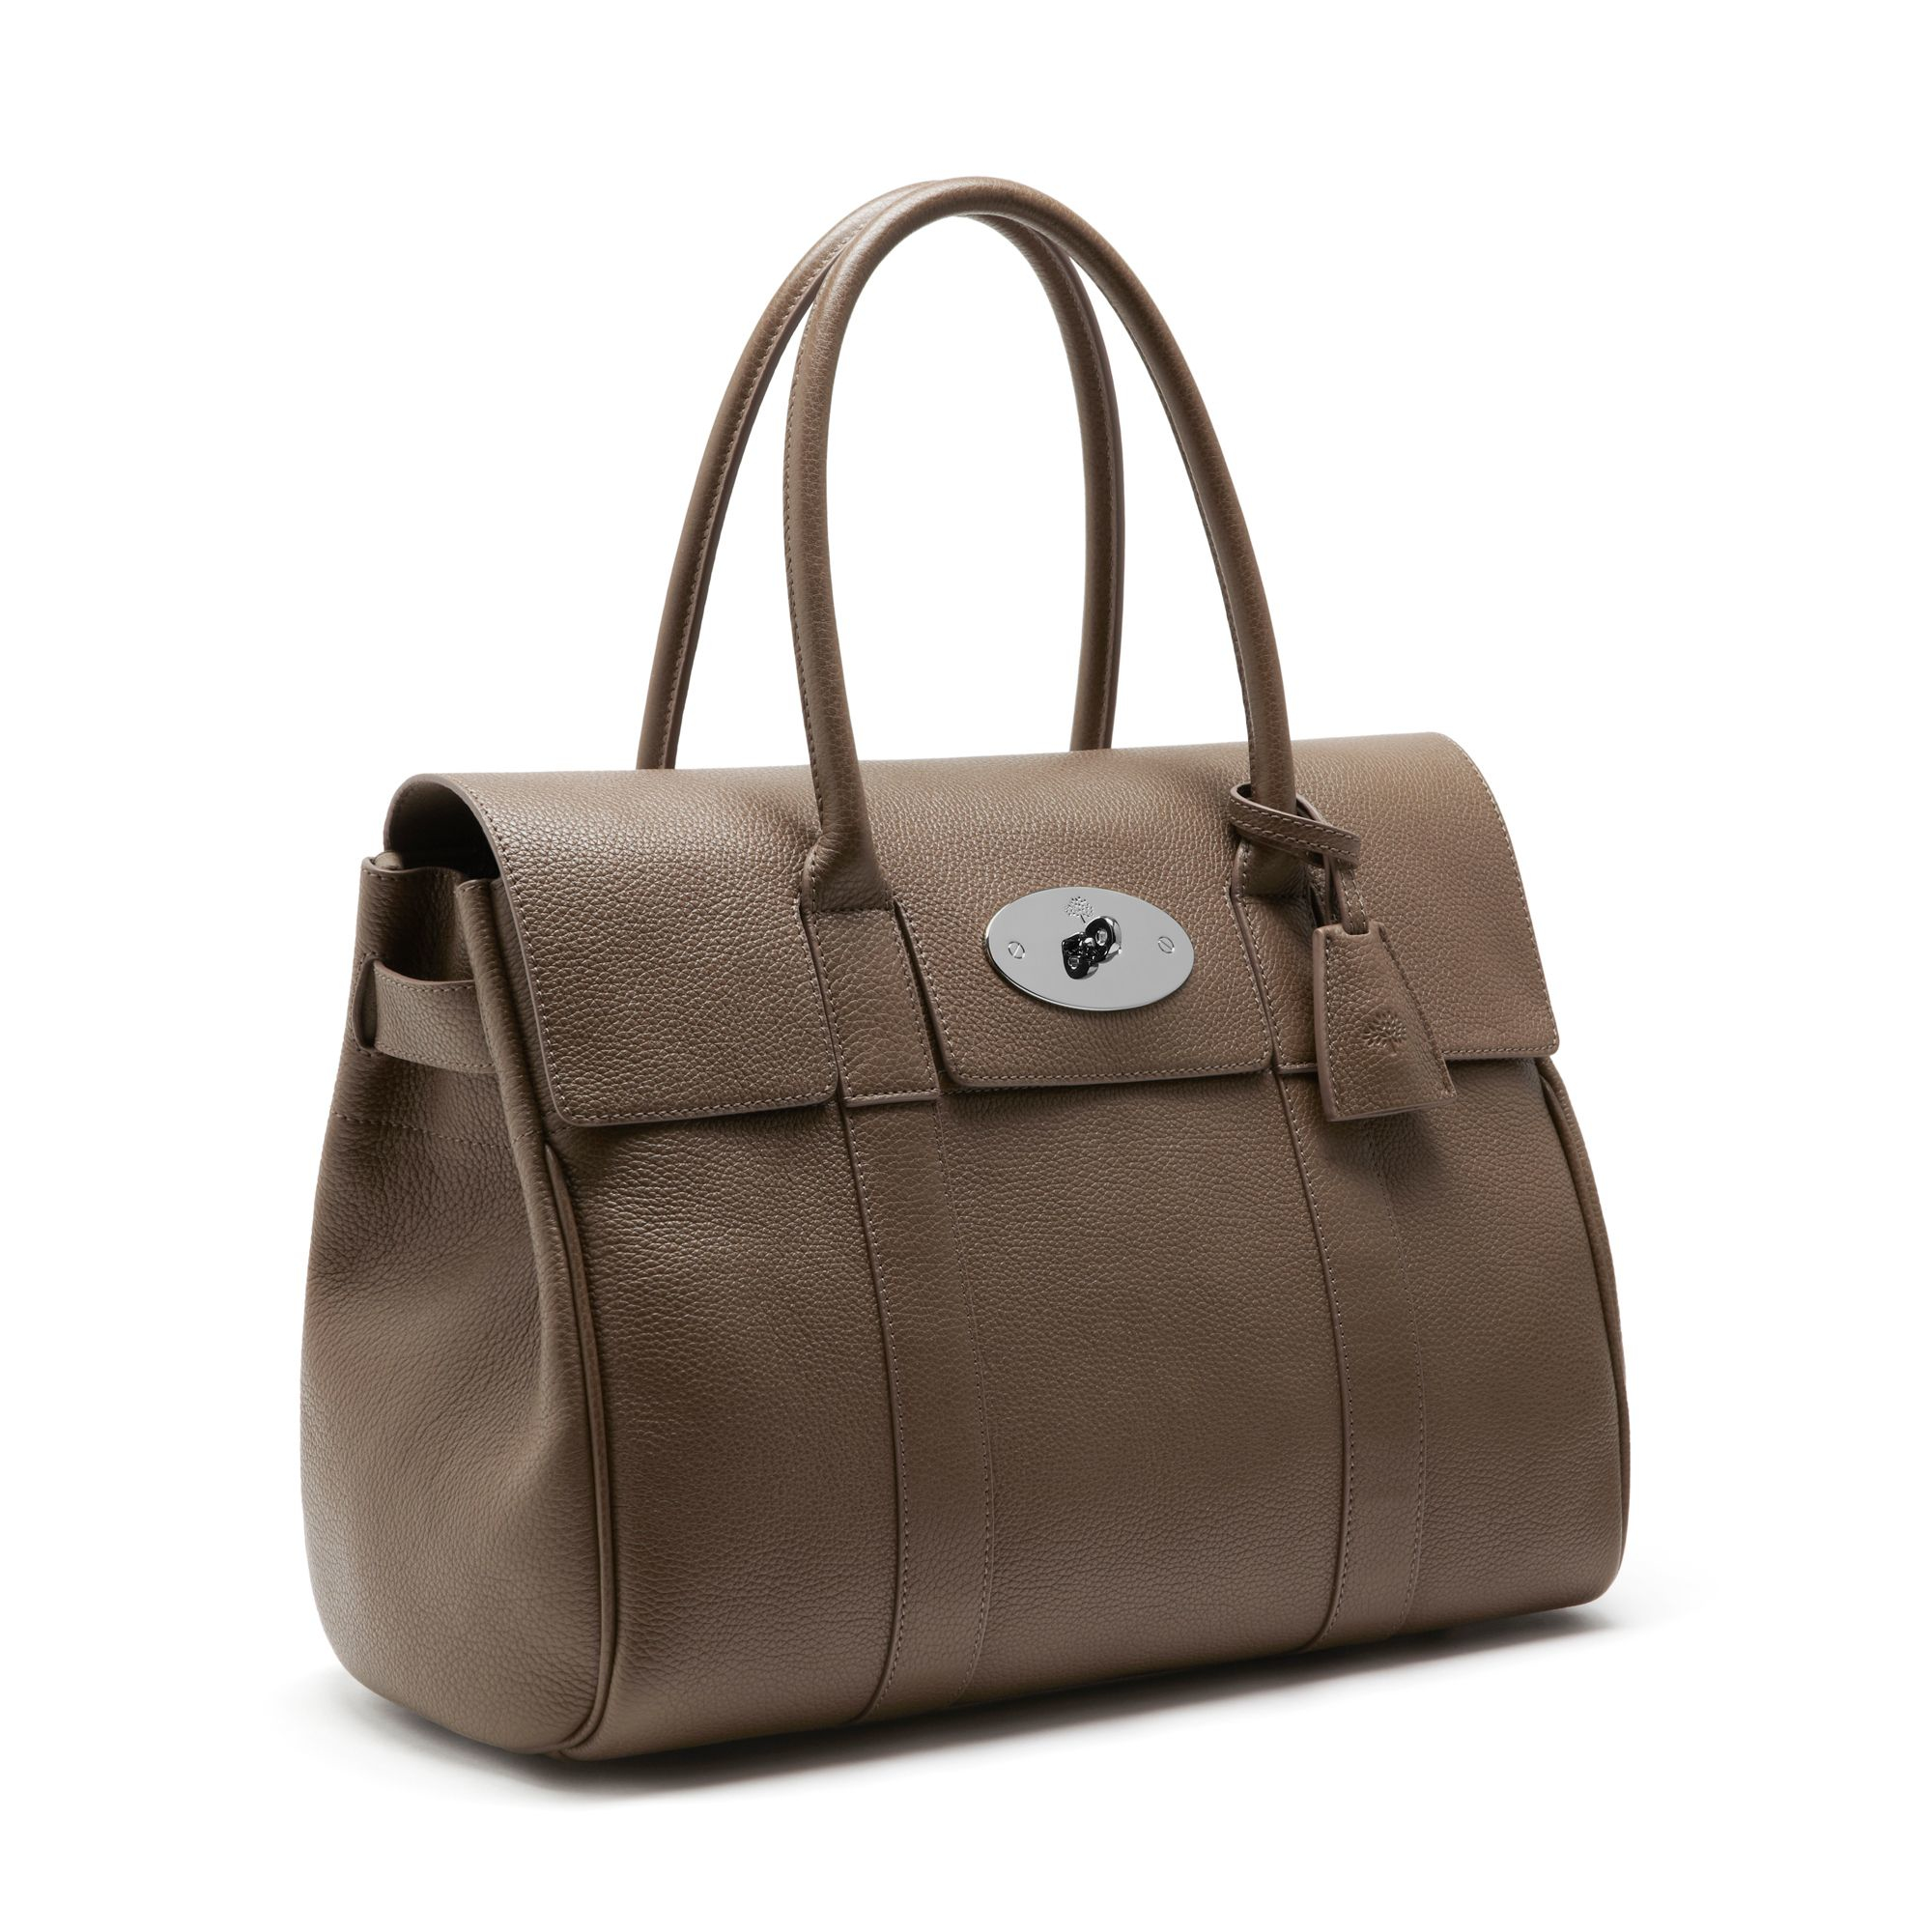 Lyst mulberry bayswater leather bag in natural for The bayswater